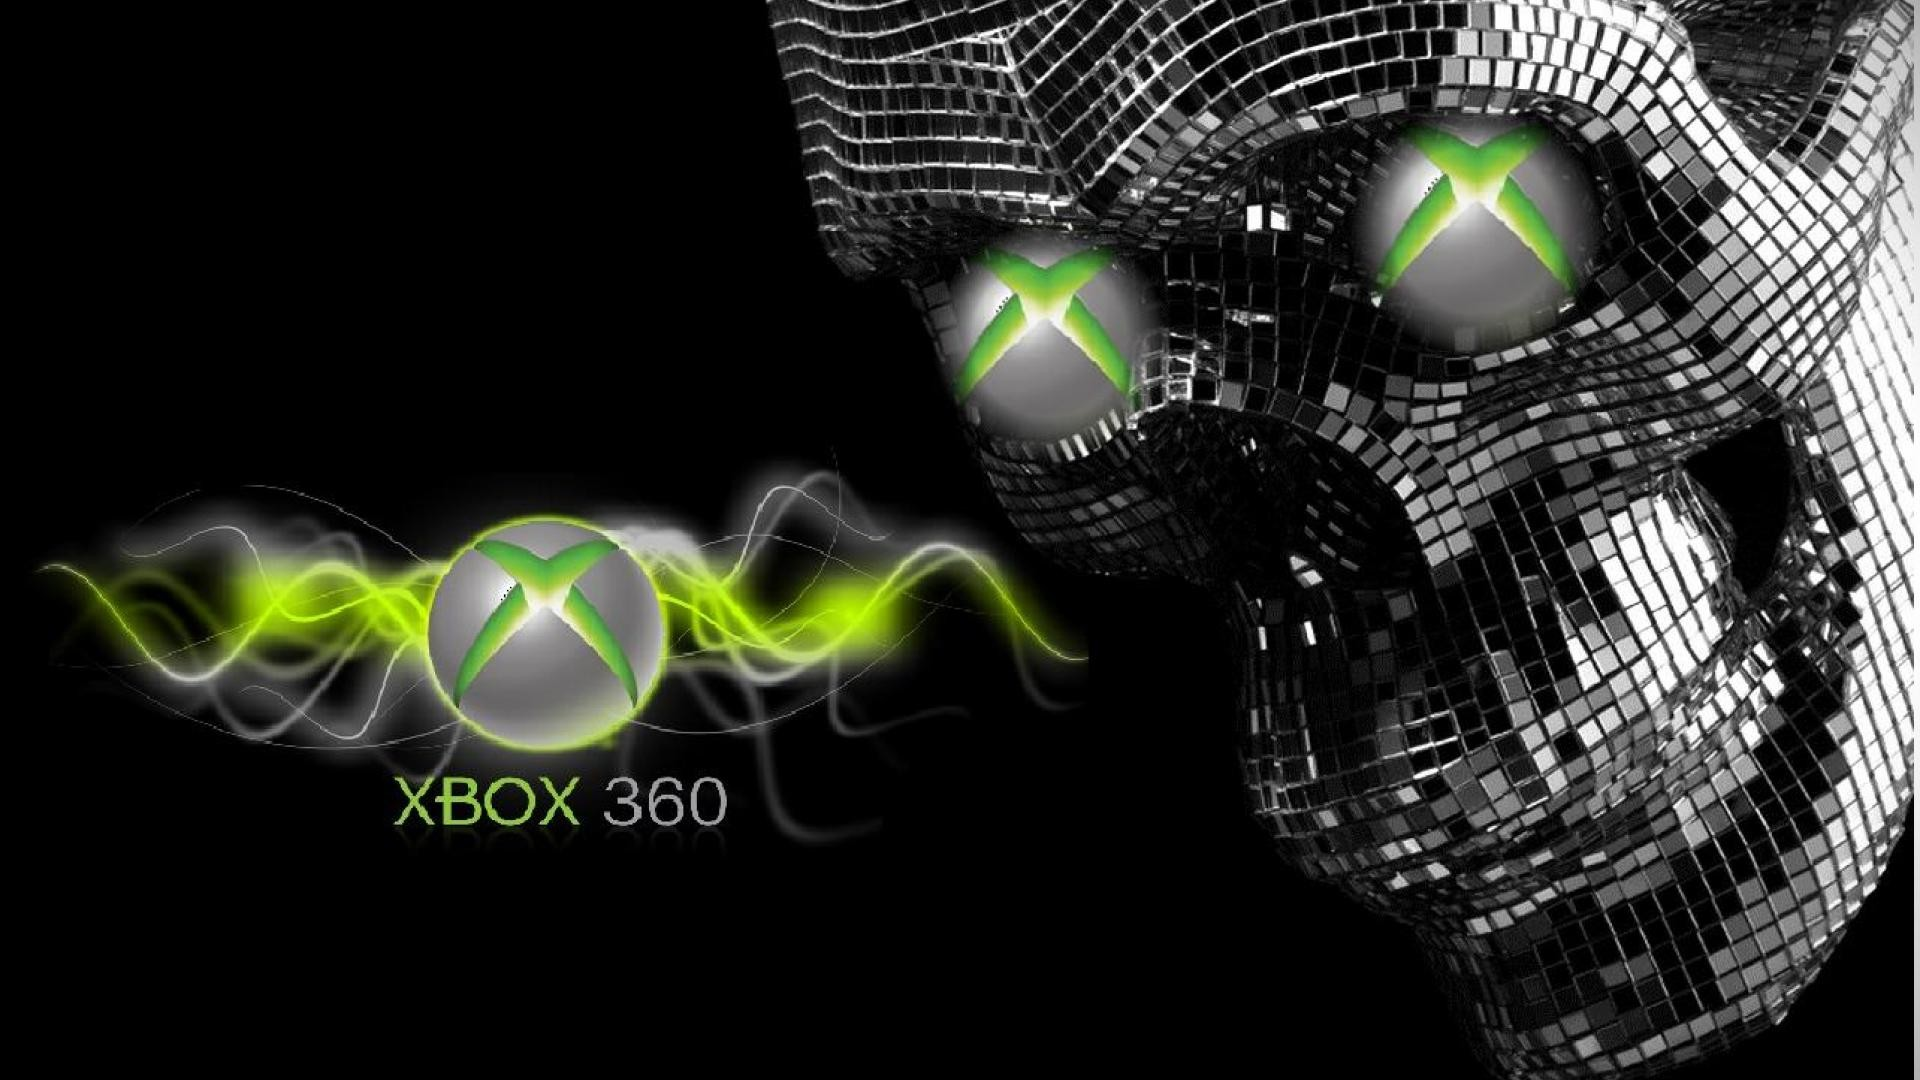 Xbox 360 wallpaper hd wallpapertag - Xbox one wallpaper 1920x1080 ...